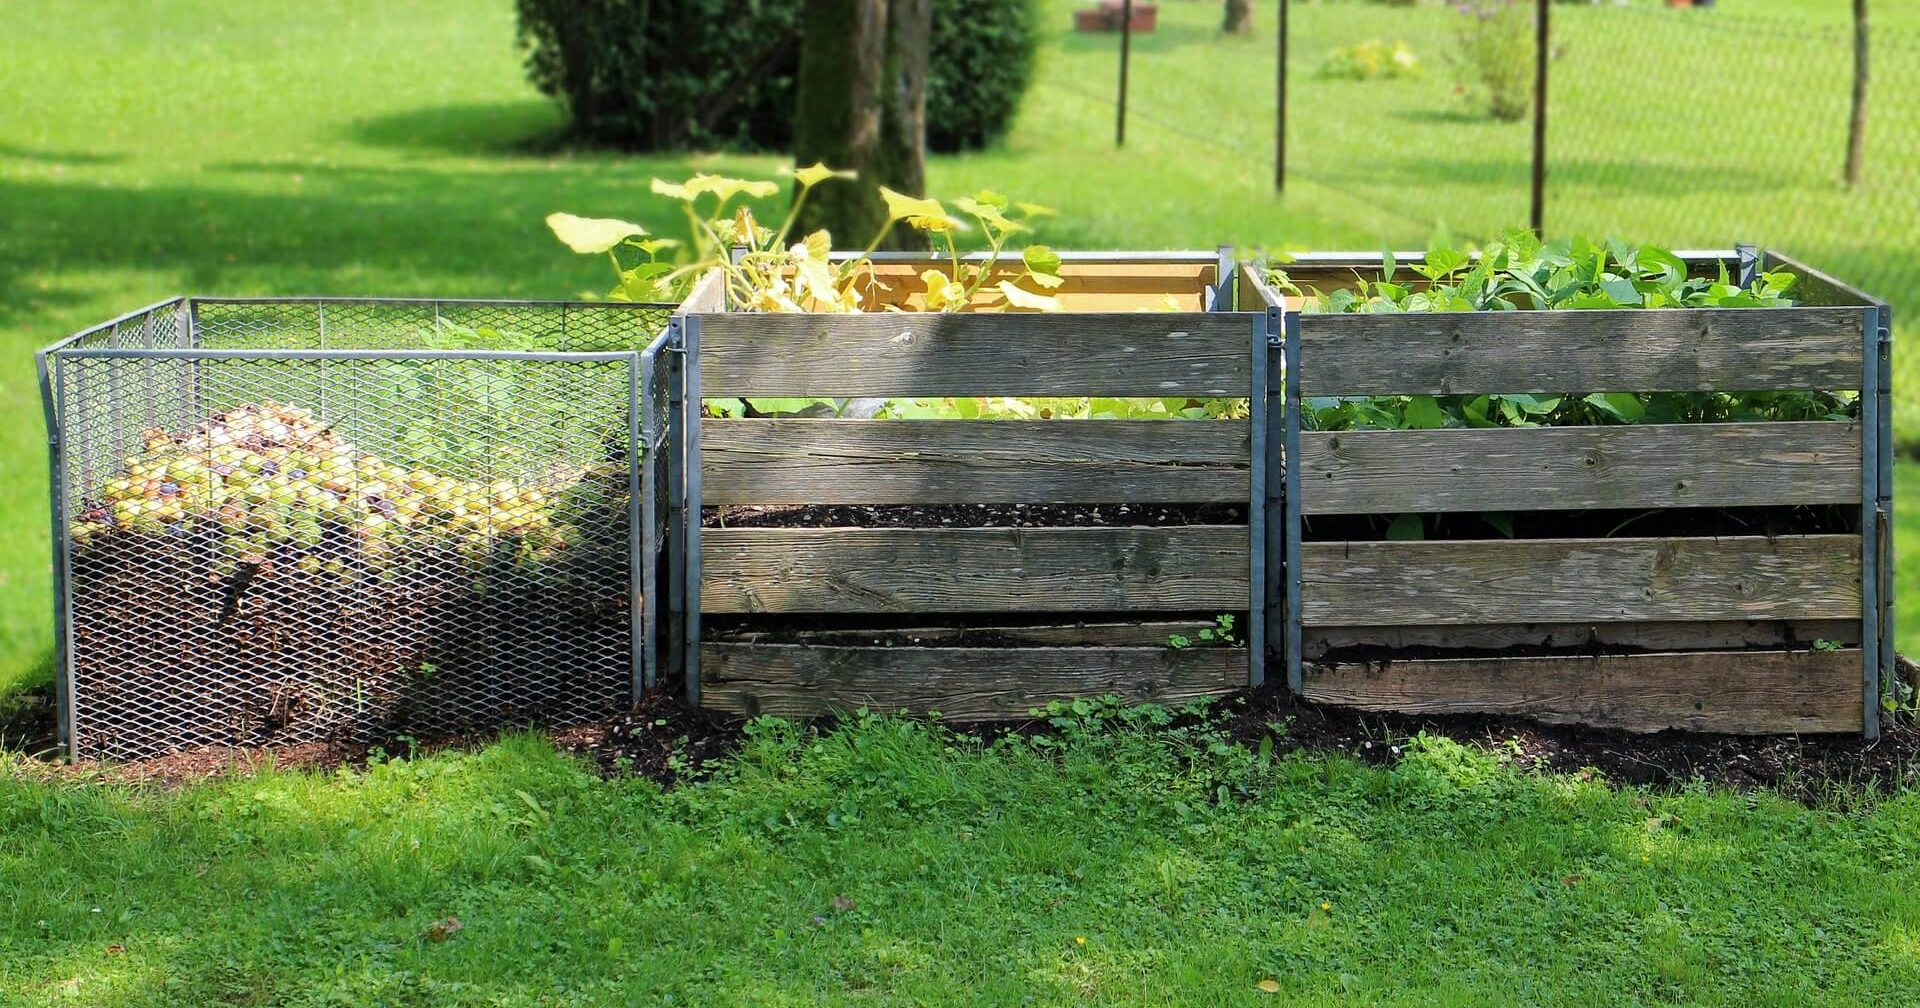 What is the composting process?